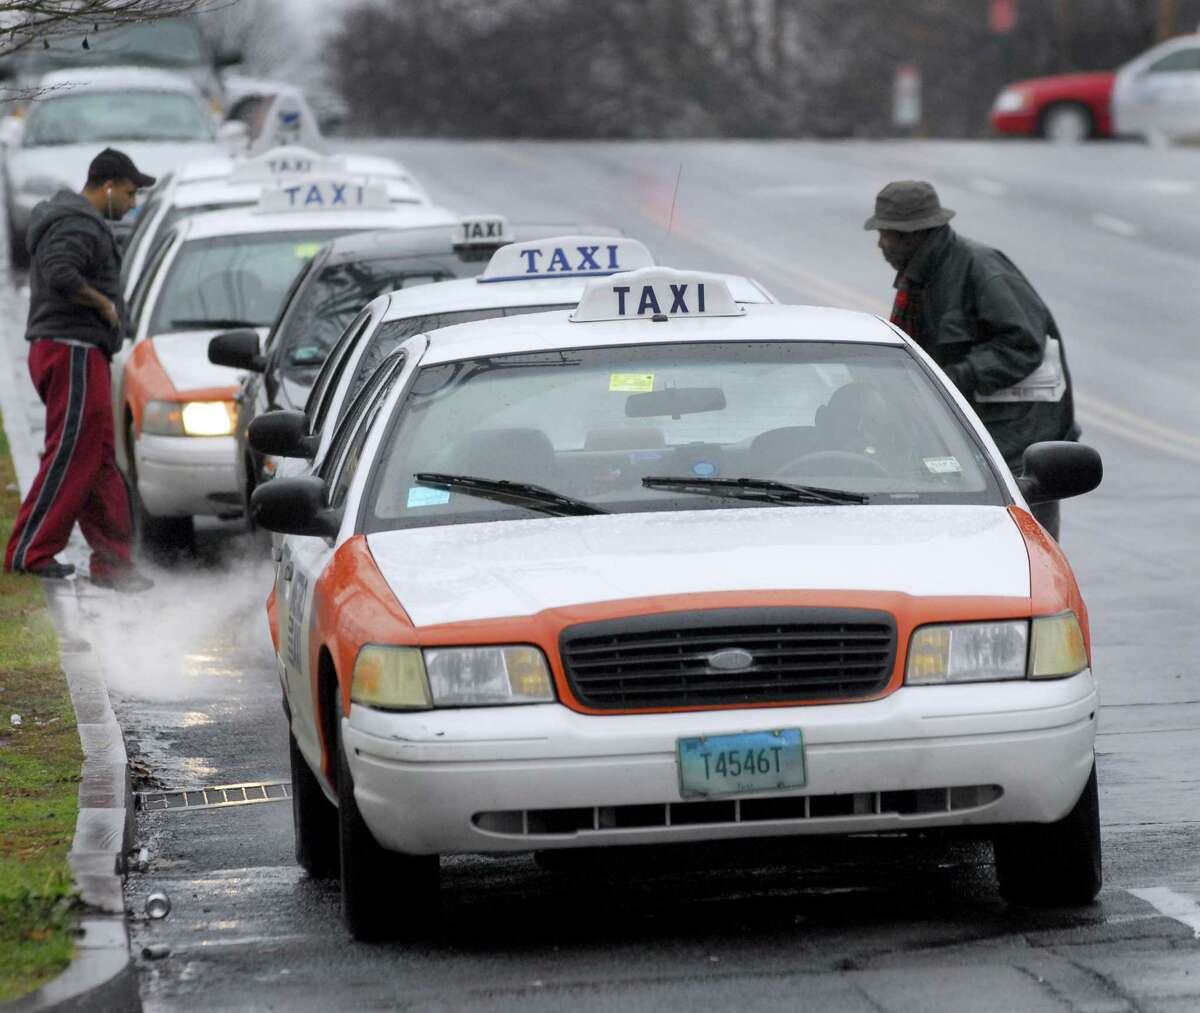 Photography by PETER HVIZDAK ph972 #2559 New Haven, Connecticut- 12/17/08: Taxi's line up outside of Union Station at the Taxi Stand on Union Ave. in New Haven.